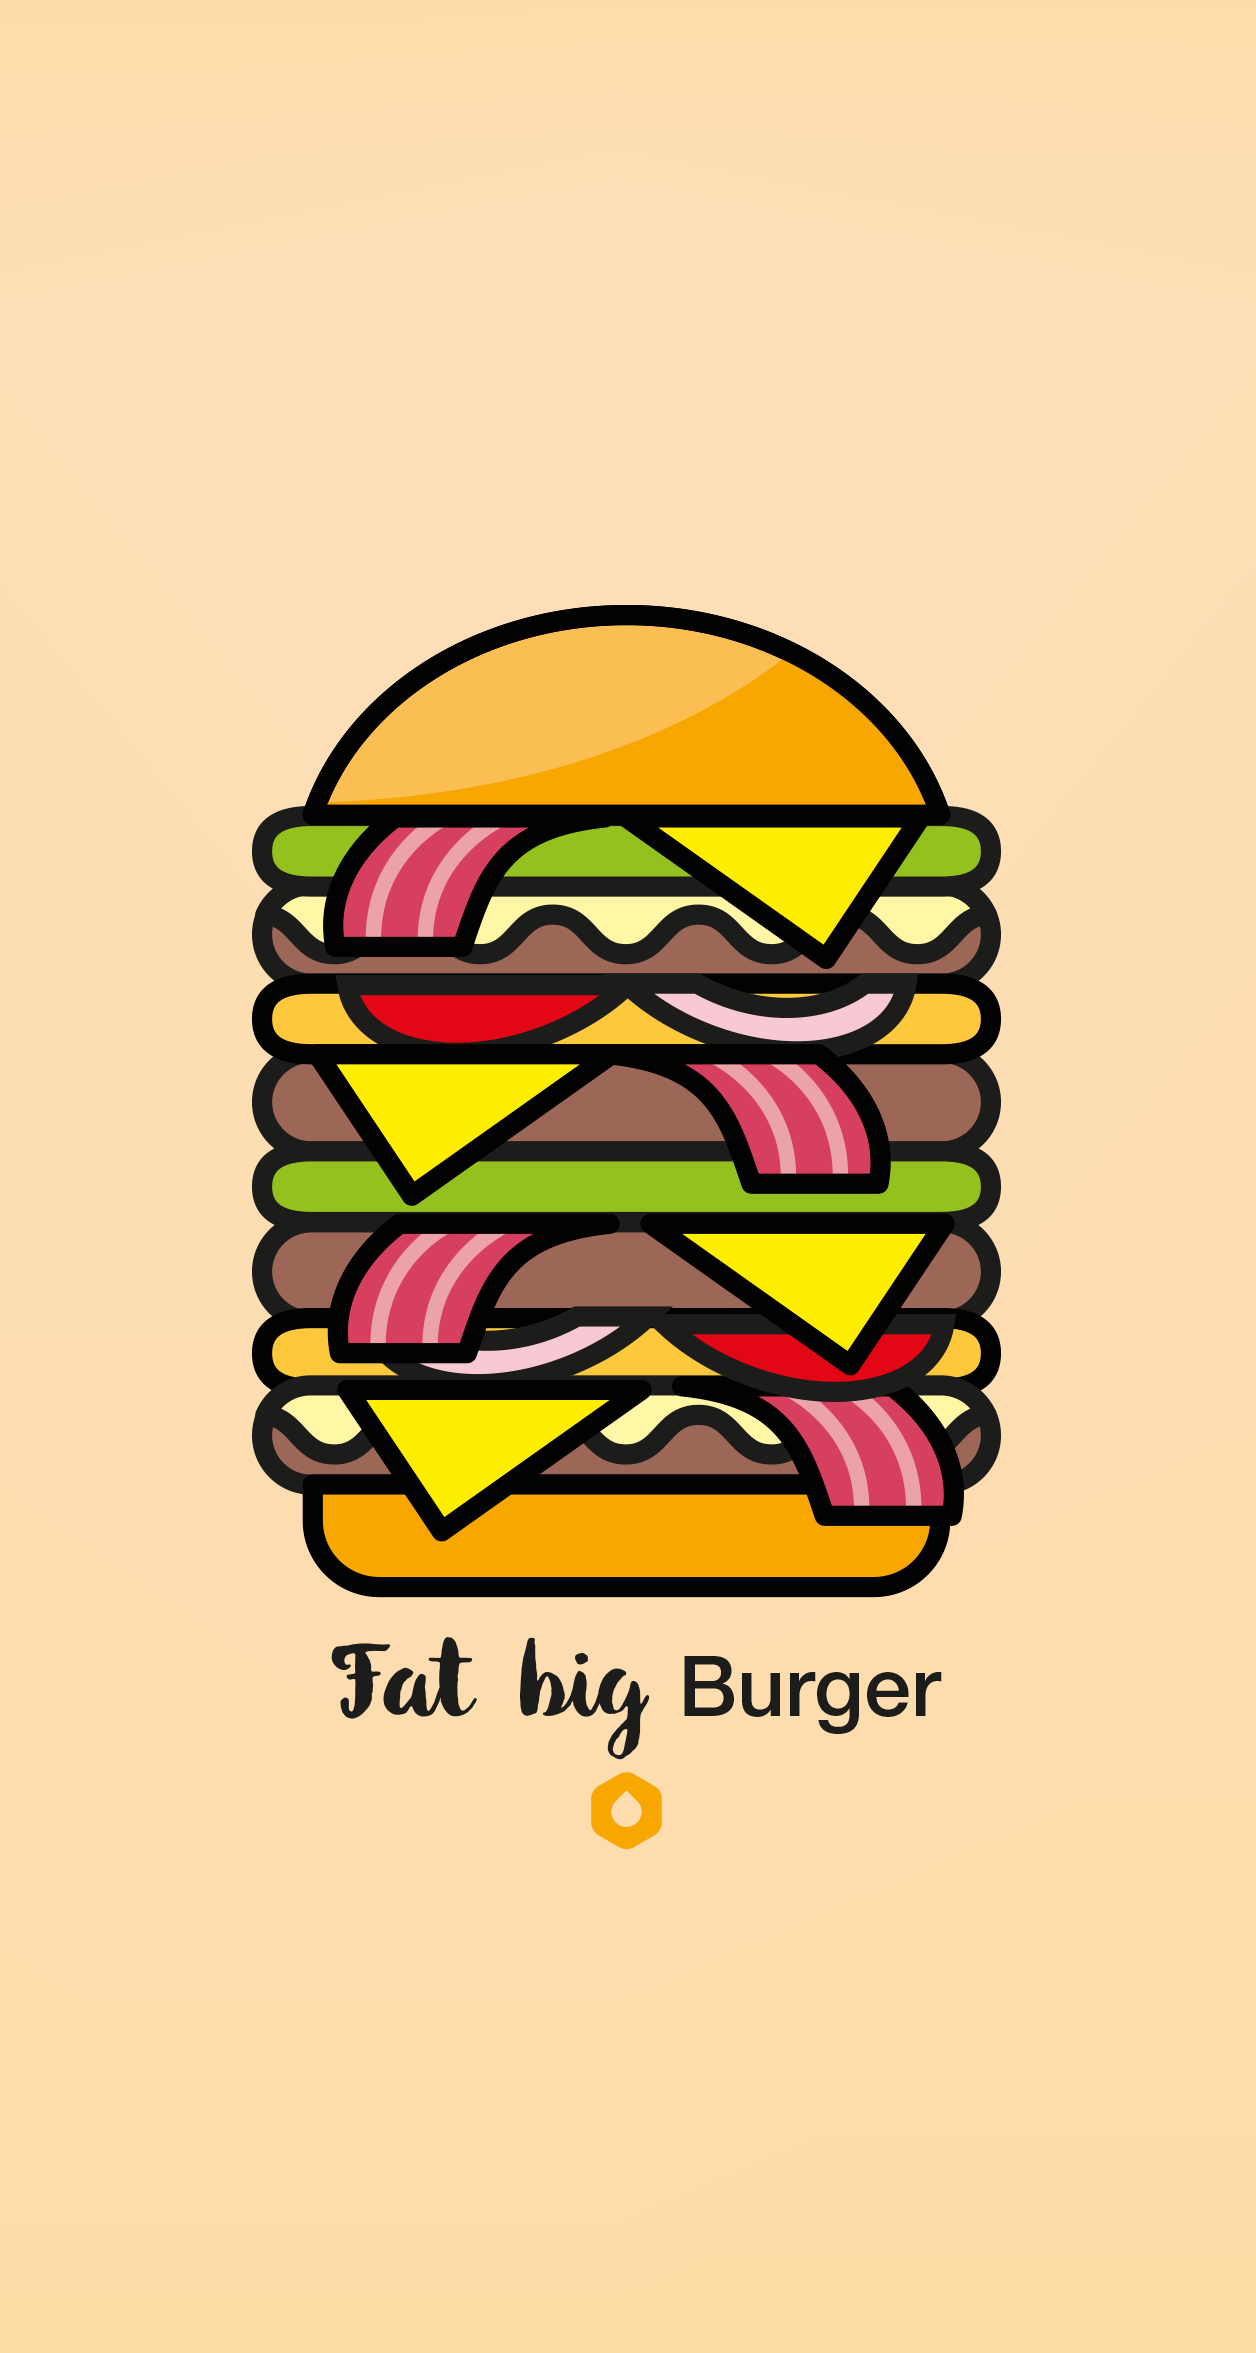 Wallpaper Pick Your Burger - iPhone6P - FatBig